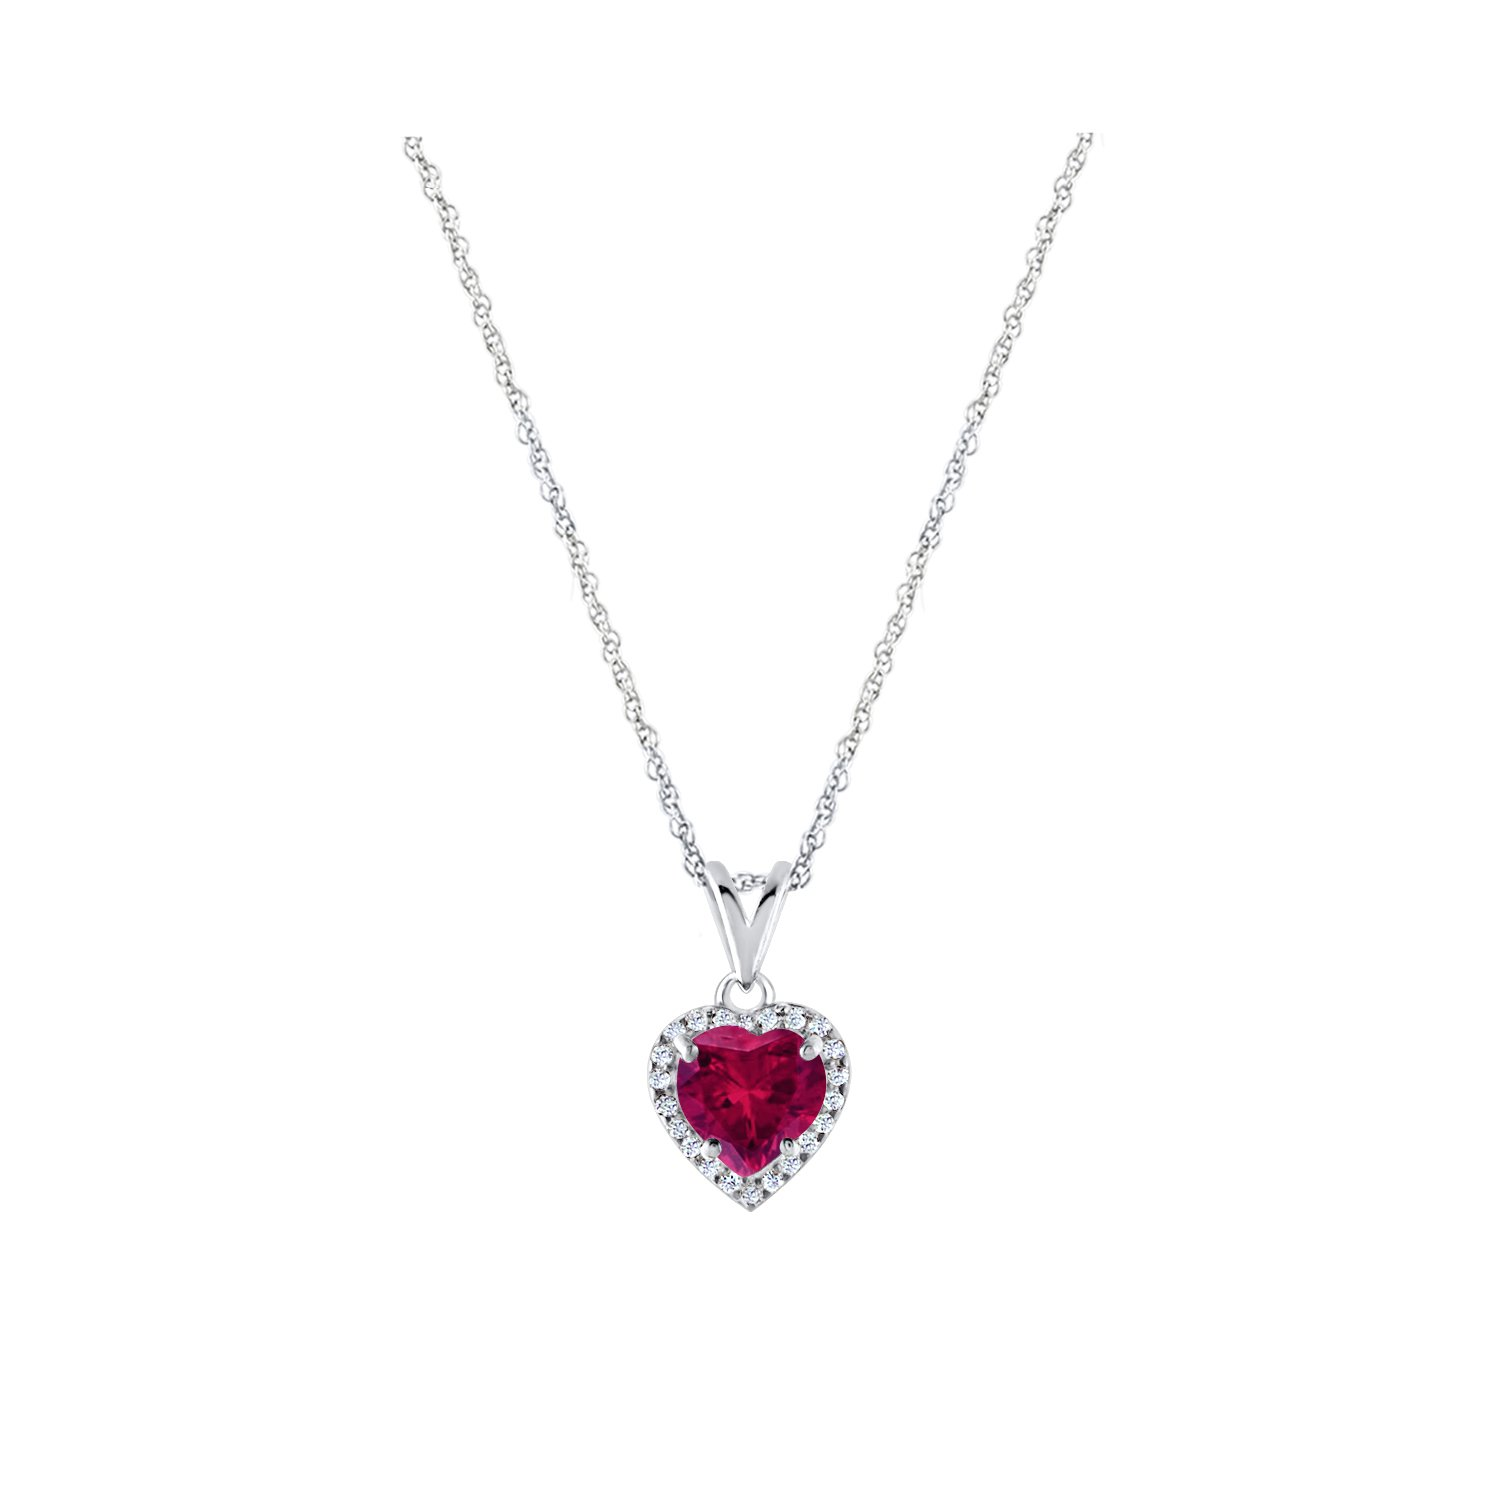 Diamond Scotch Simulated Gemstone Halo Heart Solitaire Pendant Necklace and Earrings Jewelry Sets in 14k White Gold Plated 18 inches